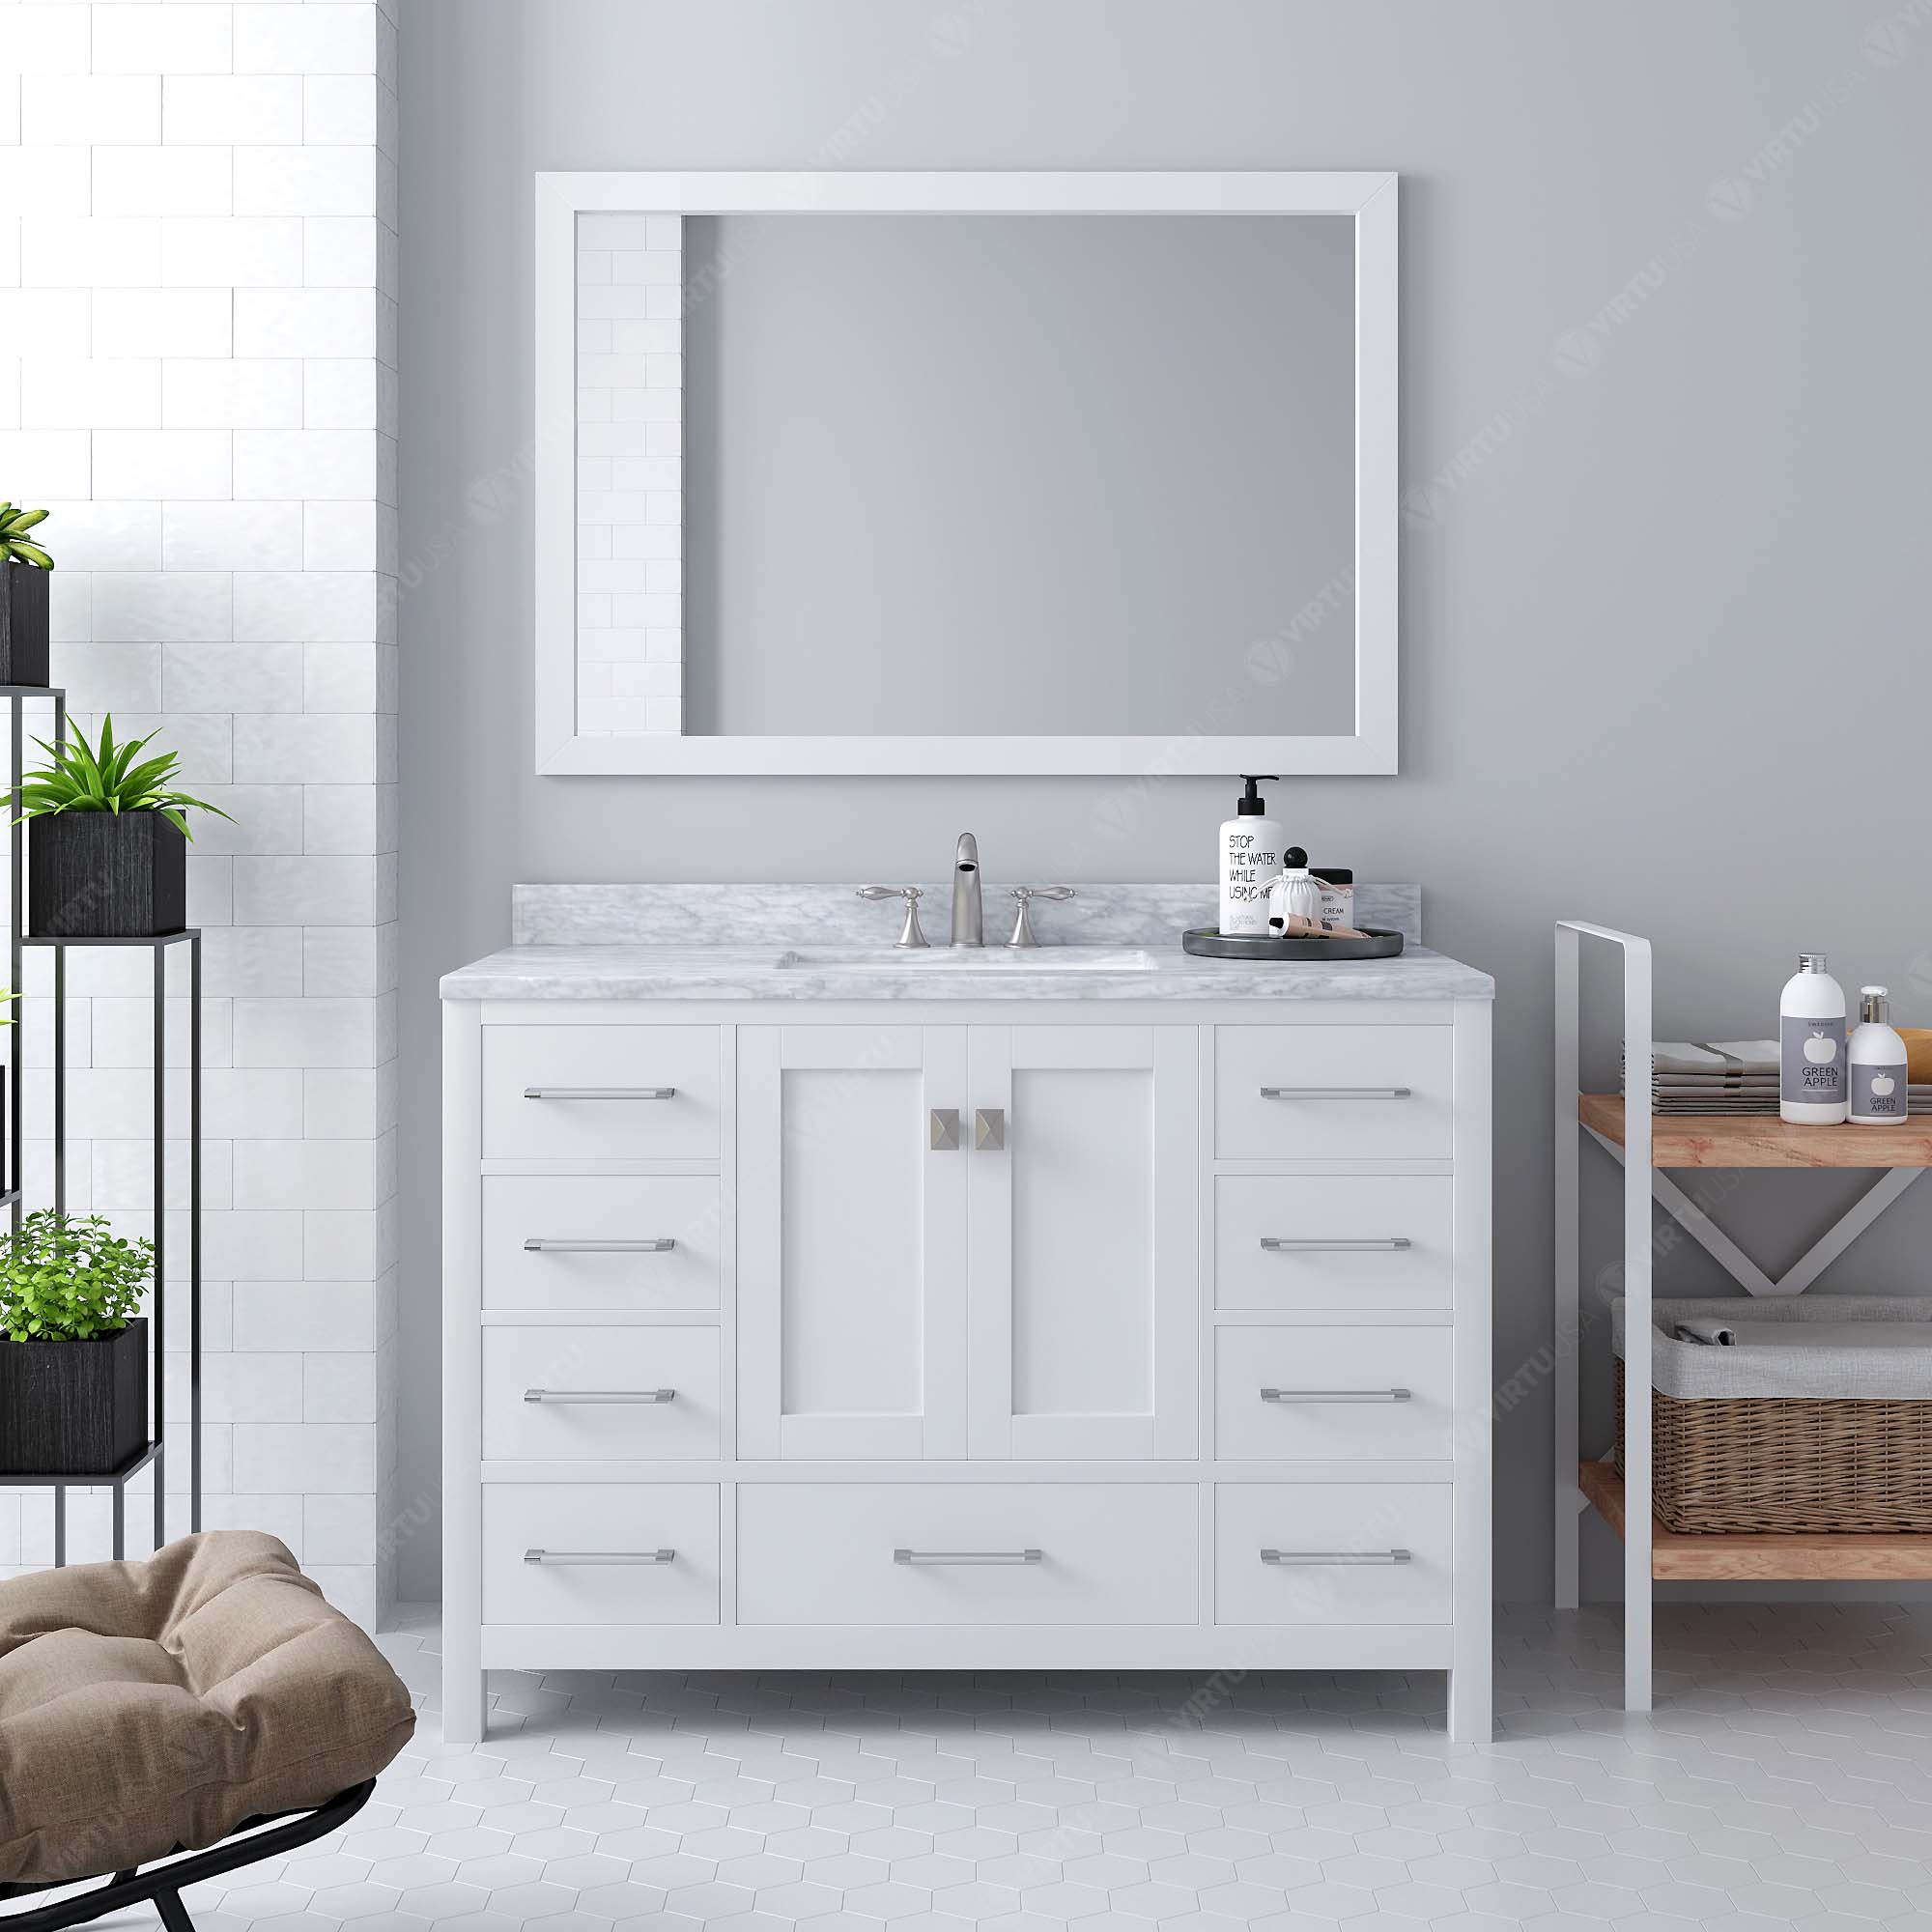 Luxury Living Direct & 9 Best Contemporary Bathroom Vanities for Your Next Remodel - Luxury ...